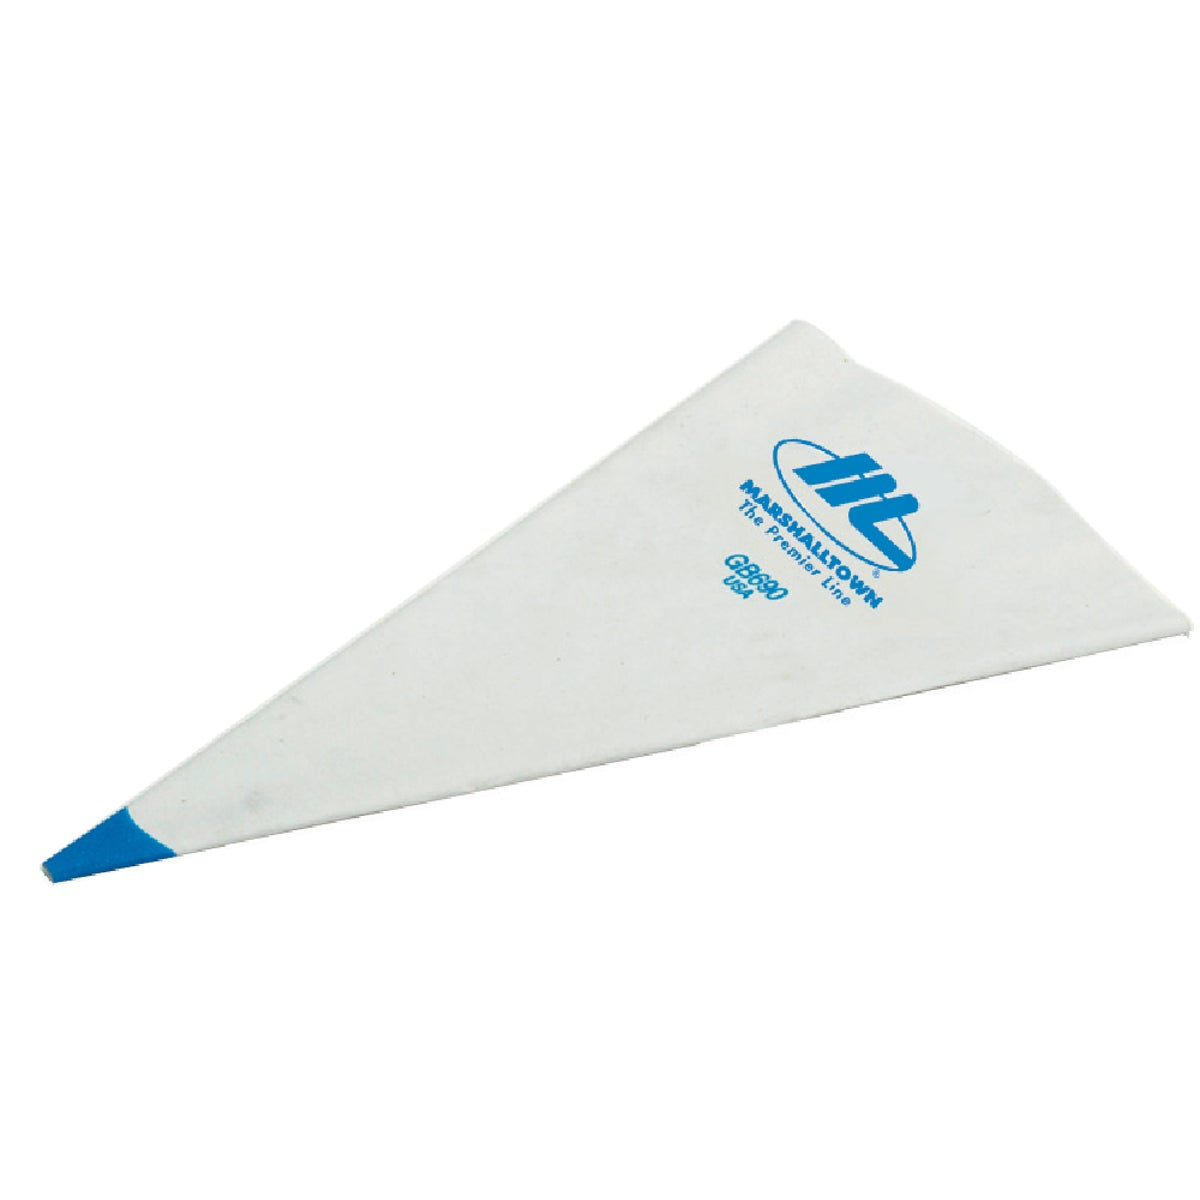 GB690 BLU-TIP GROUT BAG